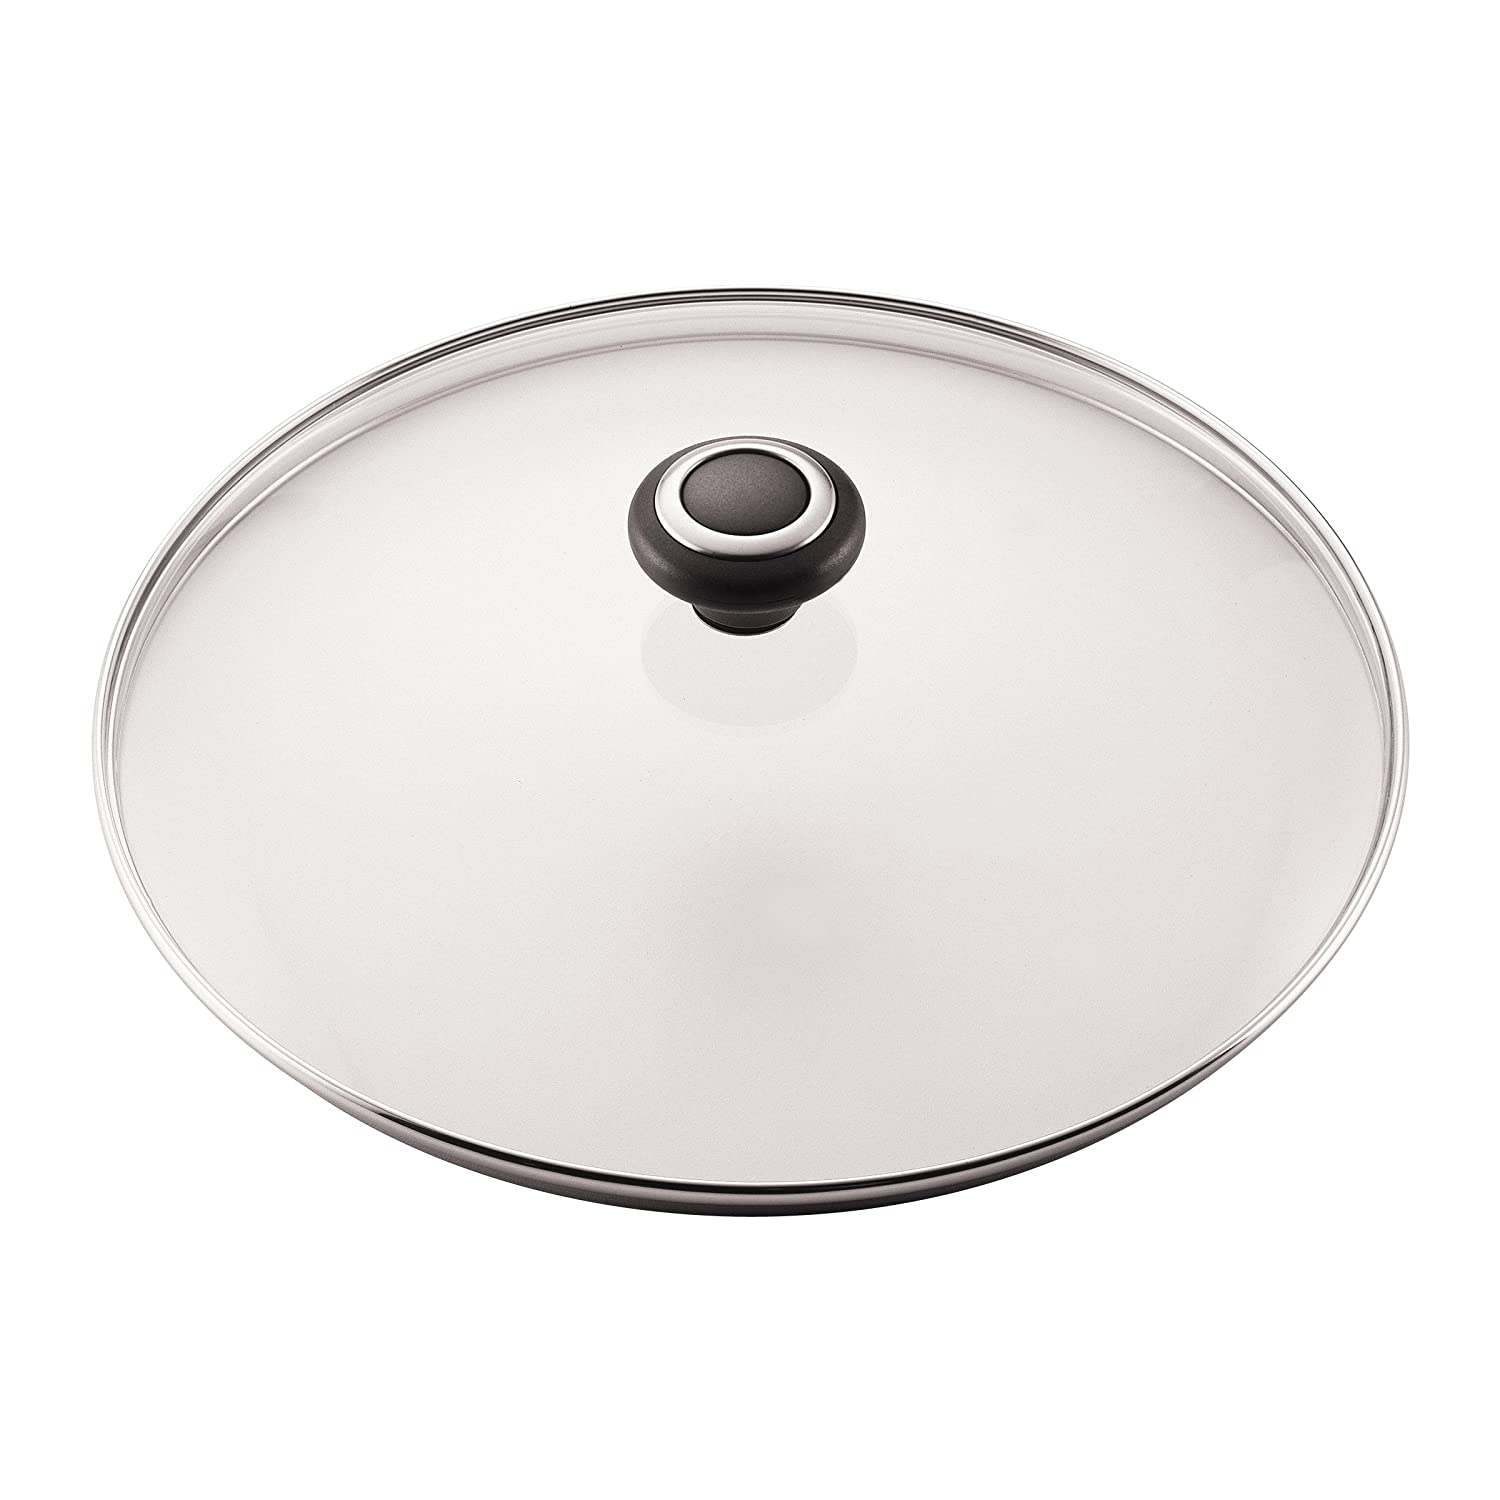 "Farberware Accessories Farberware 12"" Glass Lid"